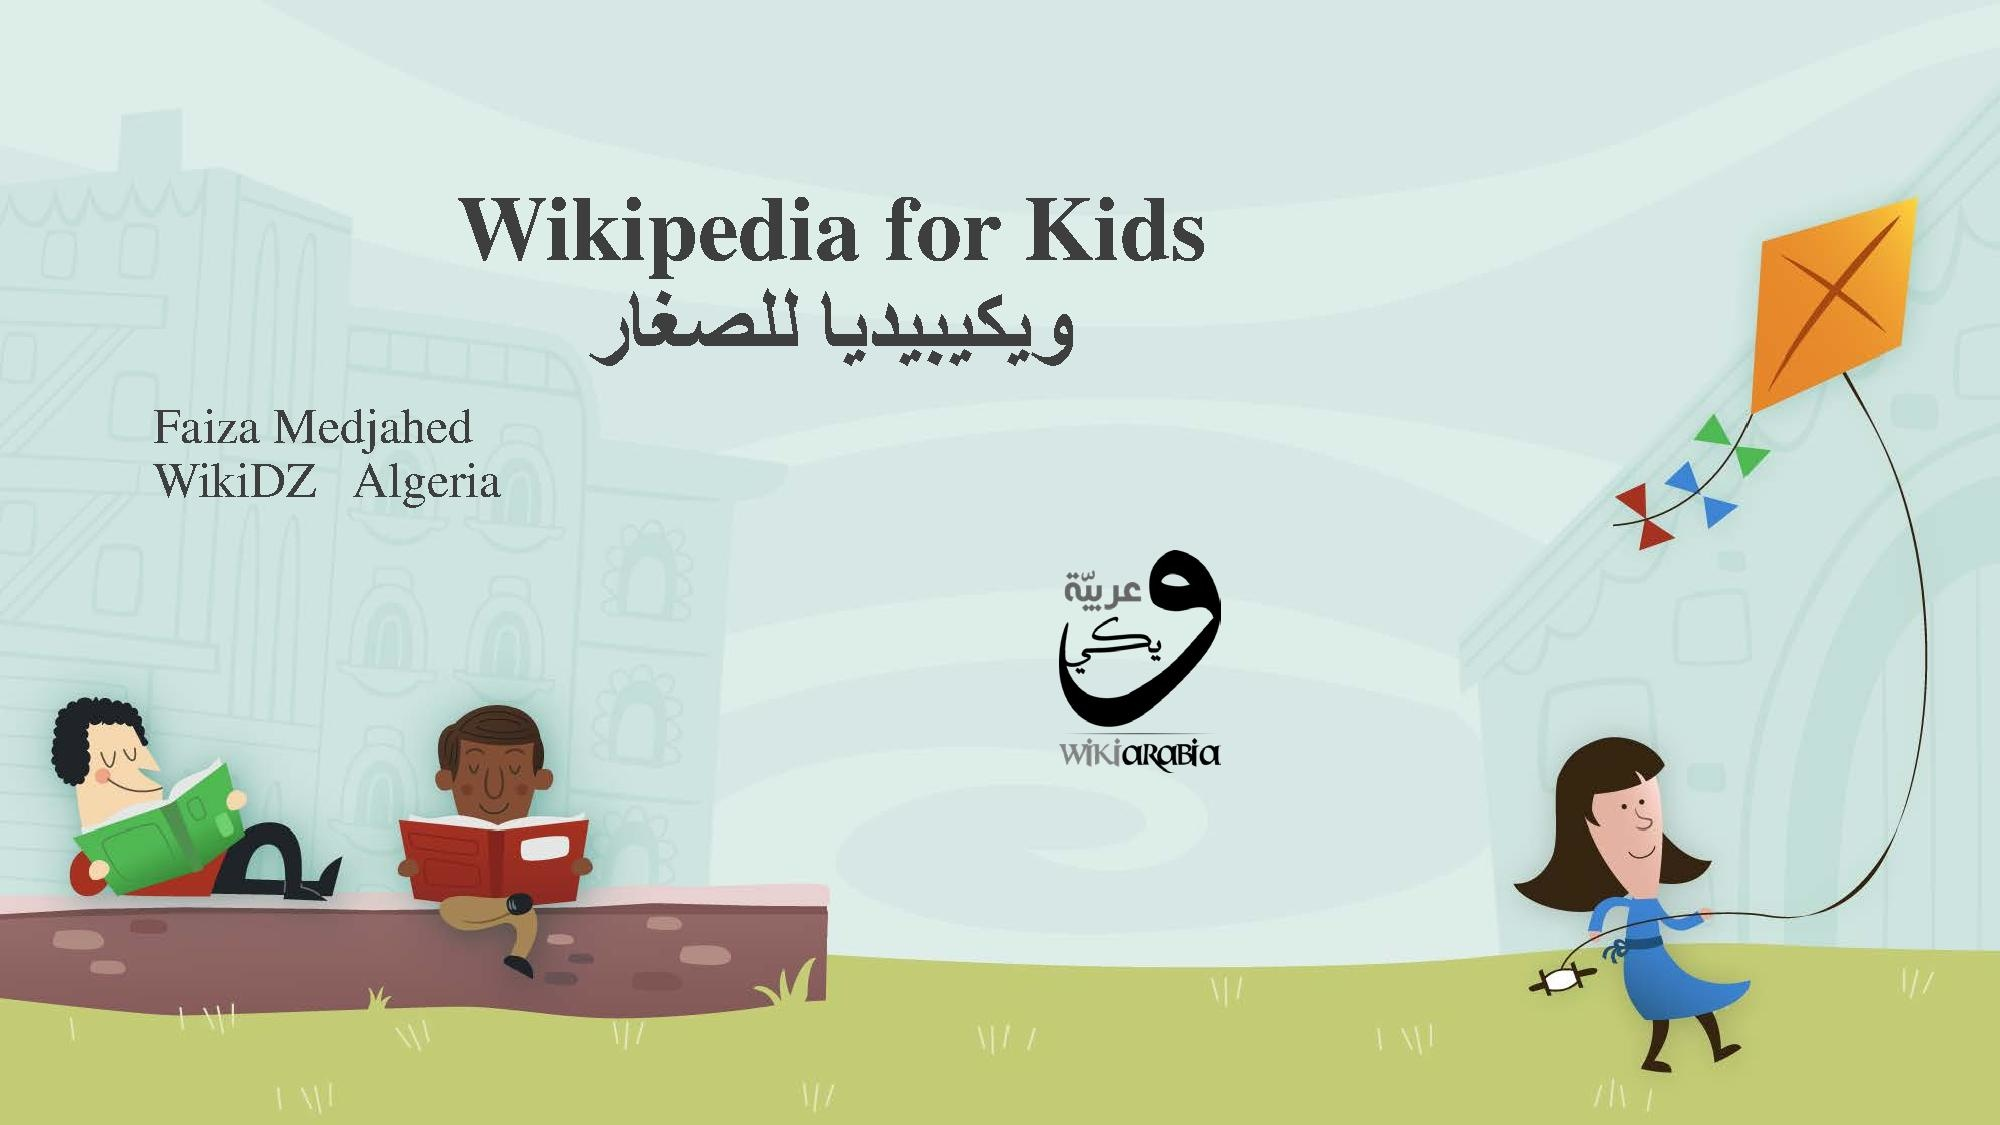 Projects in Wikipedia FOR KIDS